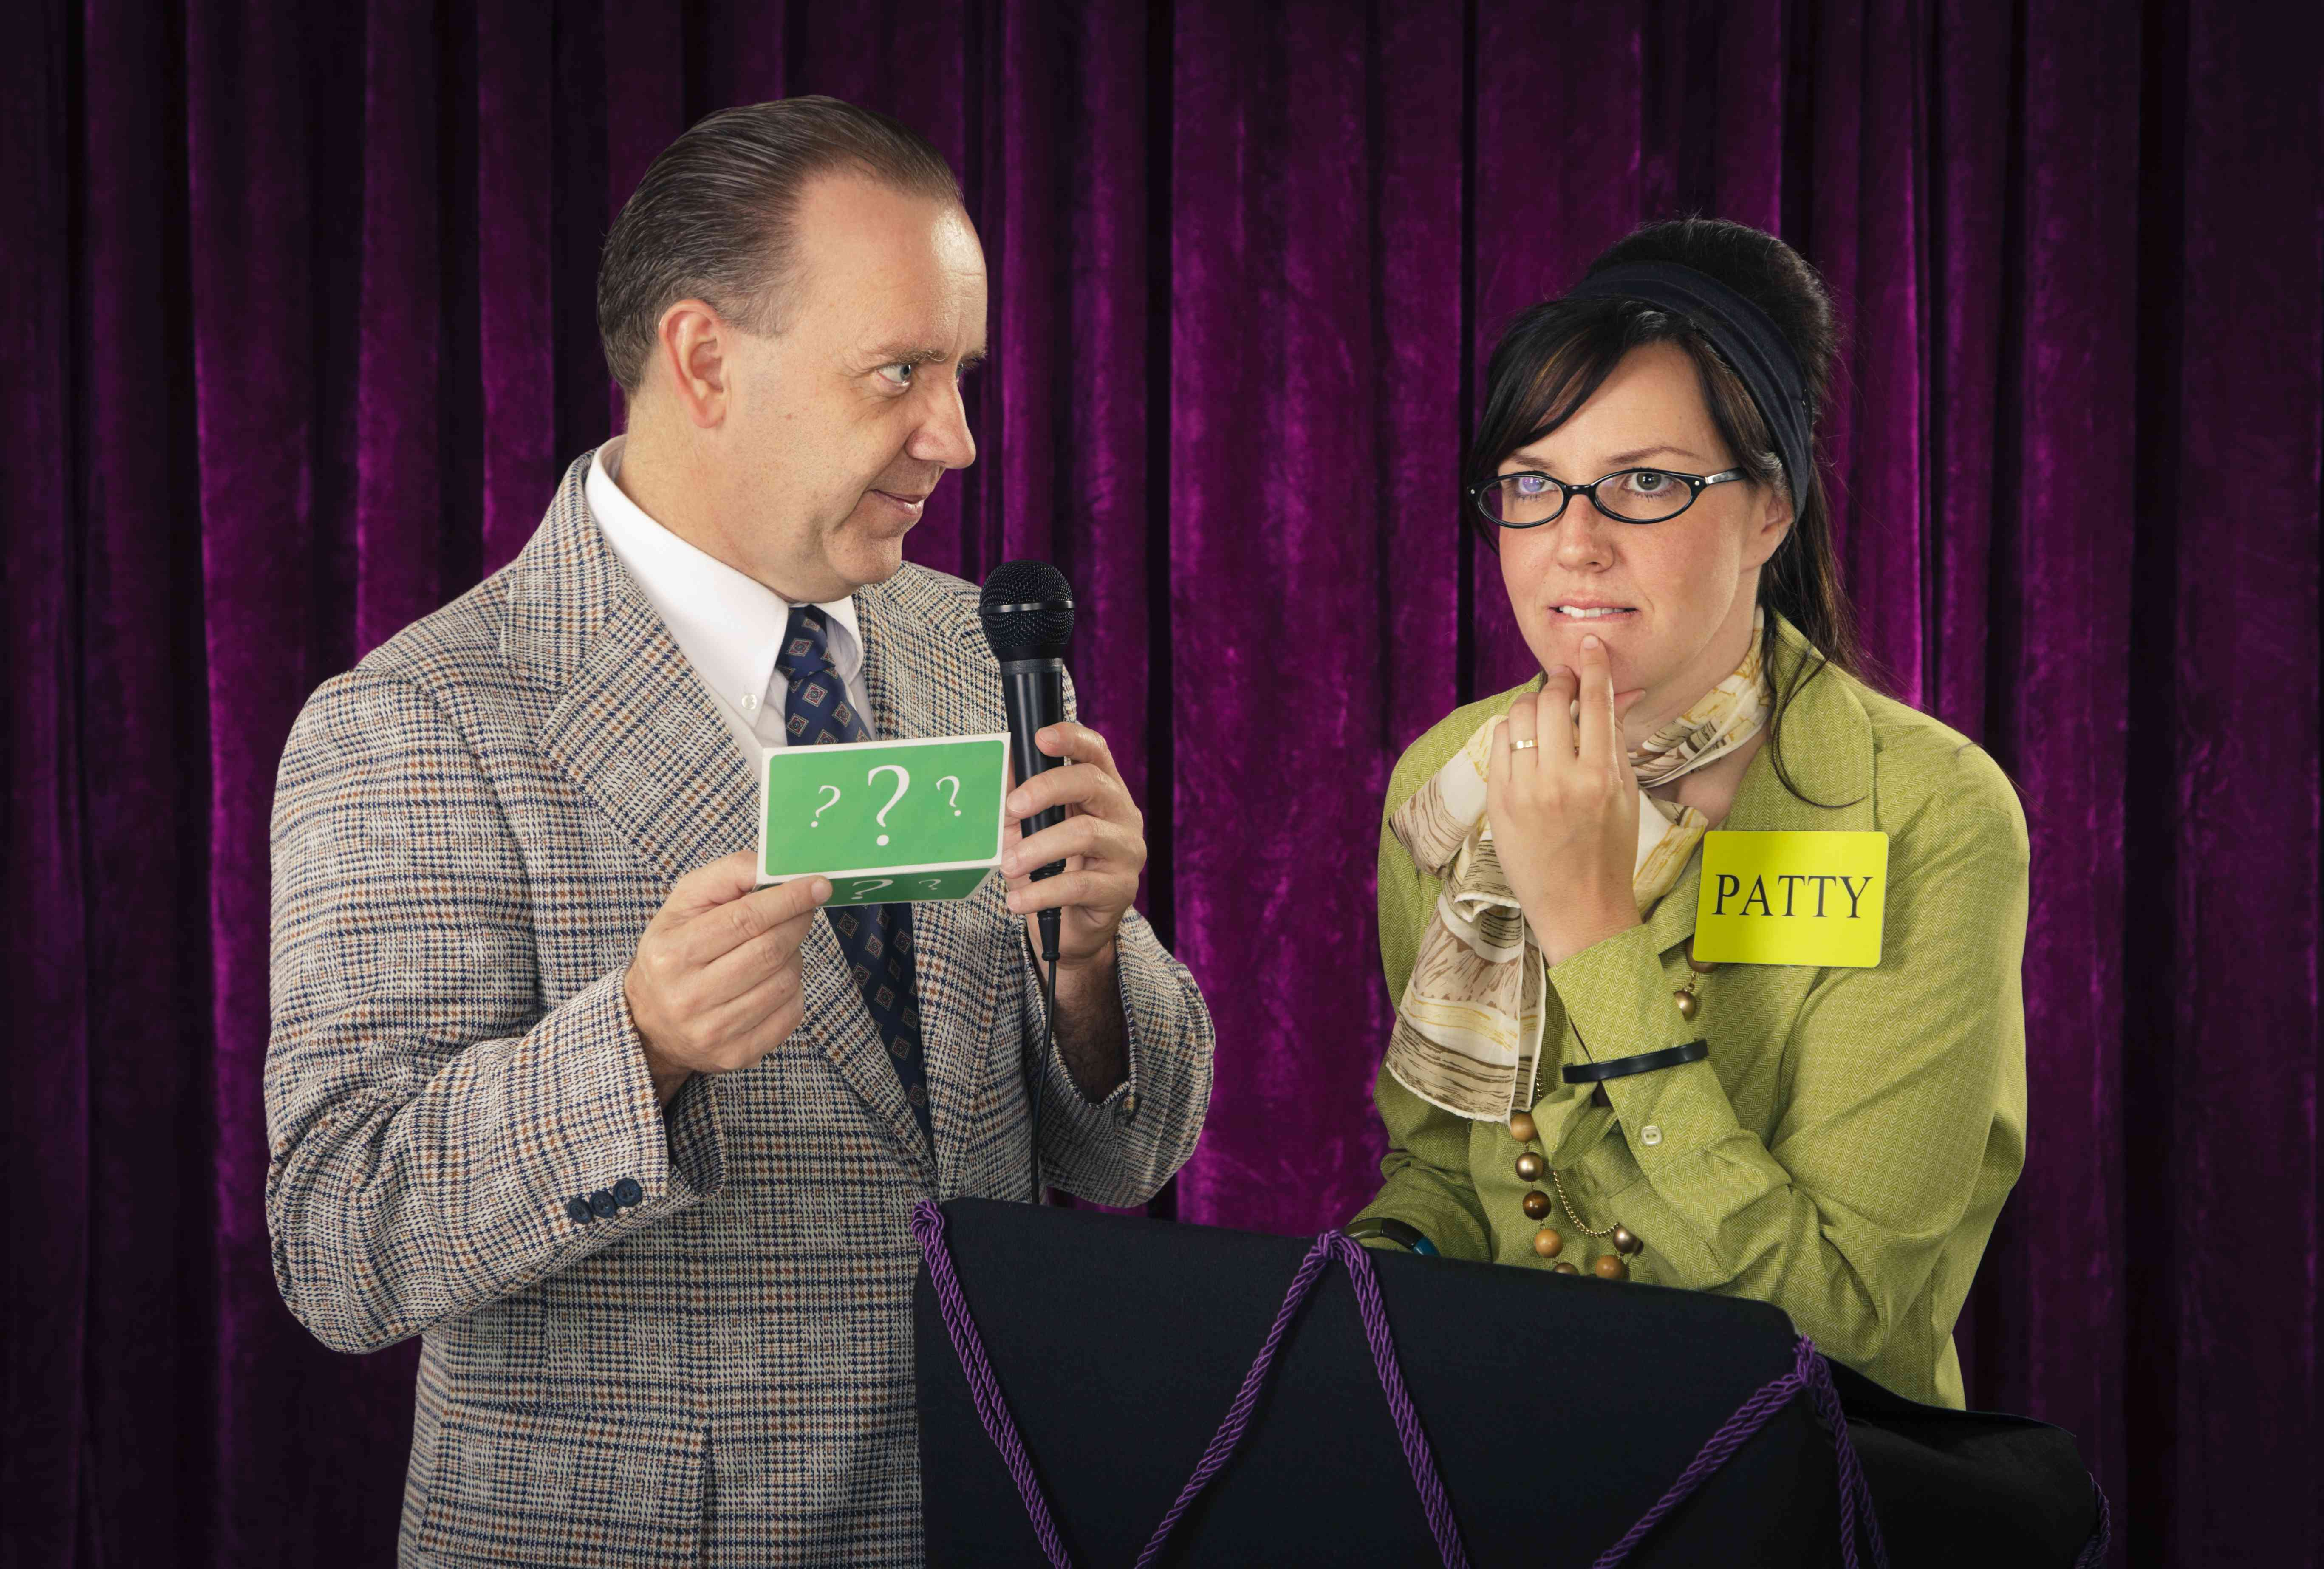 A host and contestant on a mock game show.